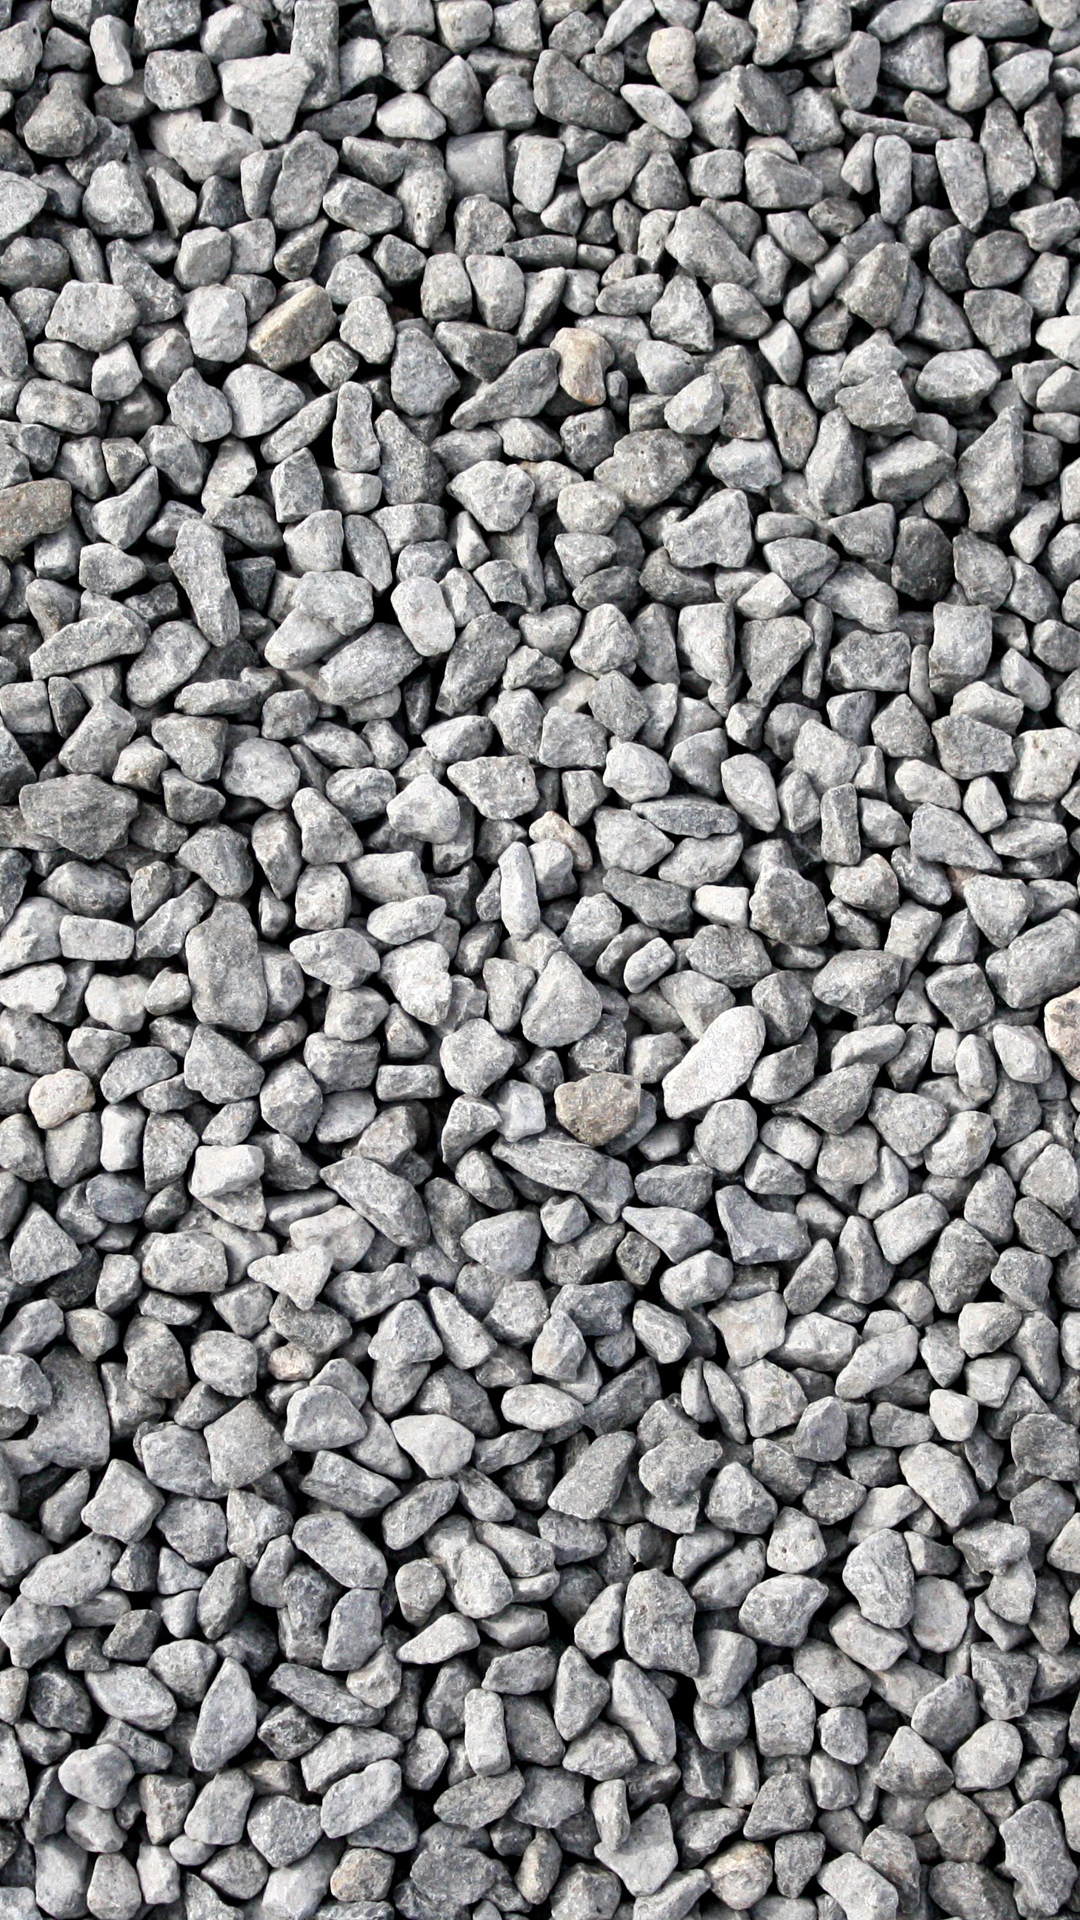 Htc One M8 Wallpaper Hd Gravel Rocks Best Htc One Wallpapers Free And Easy To